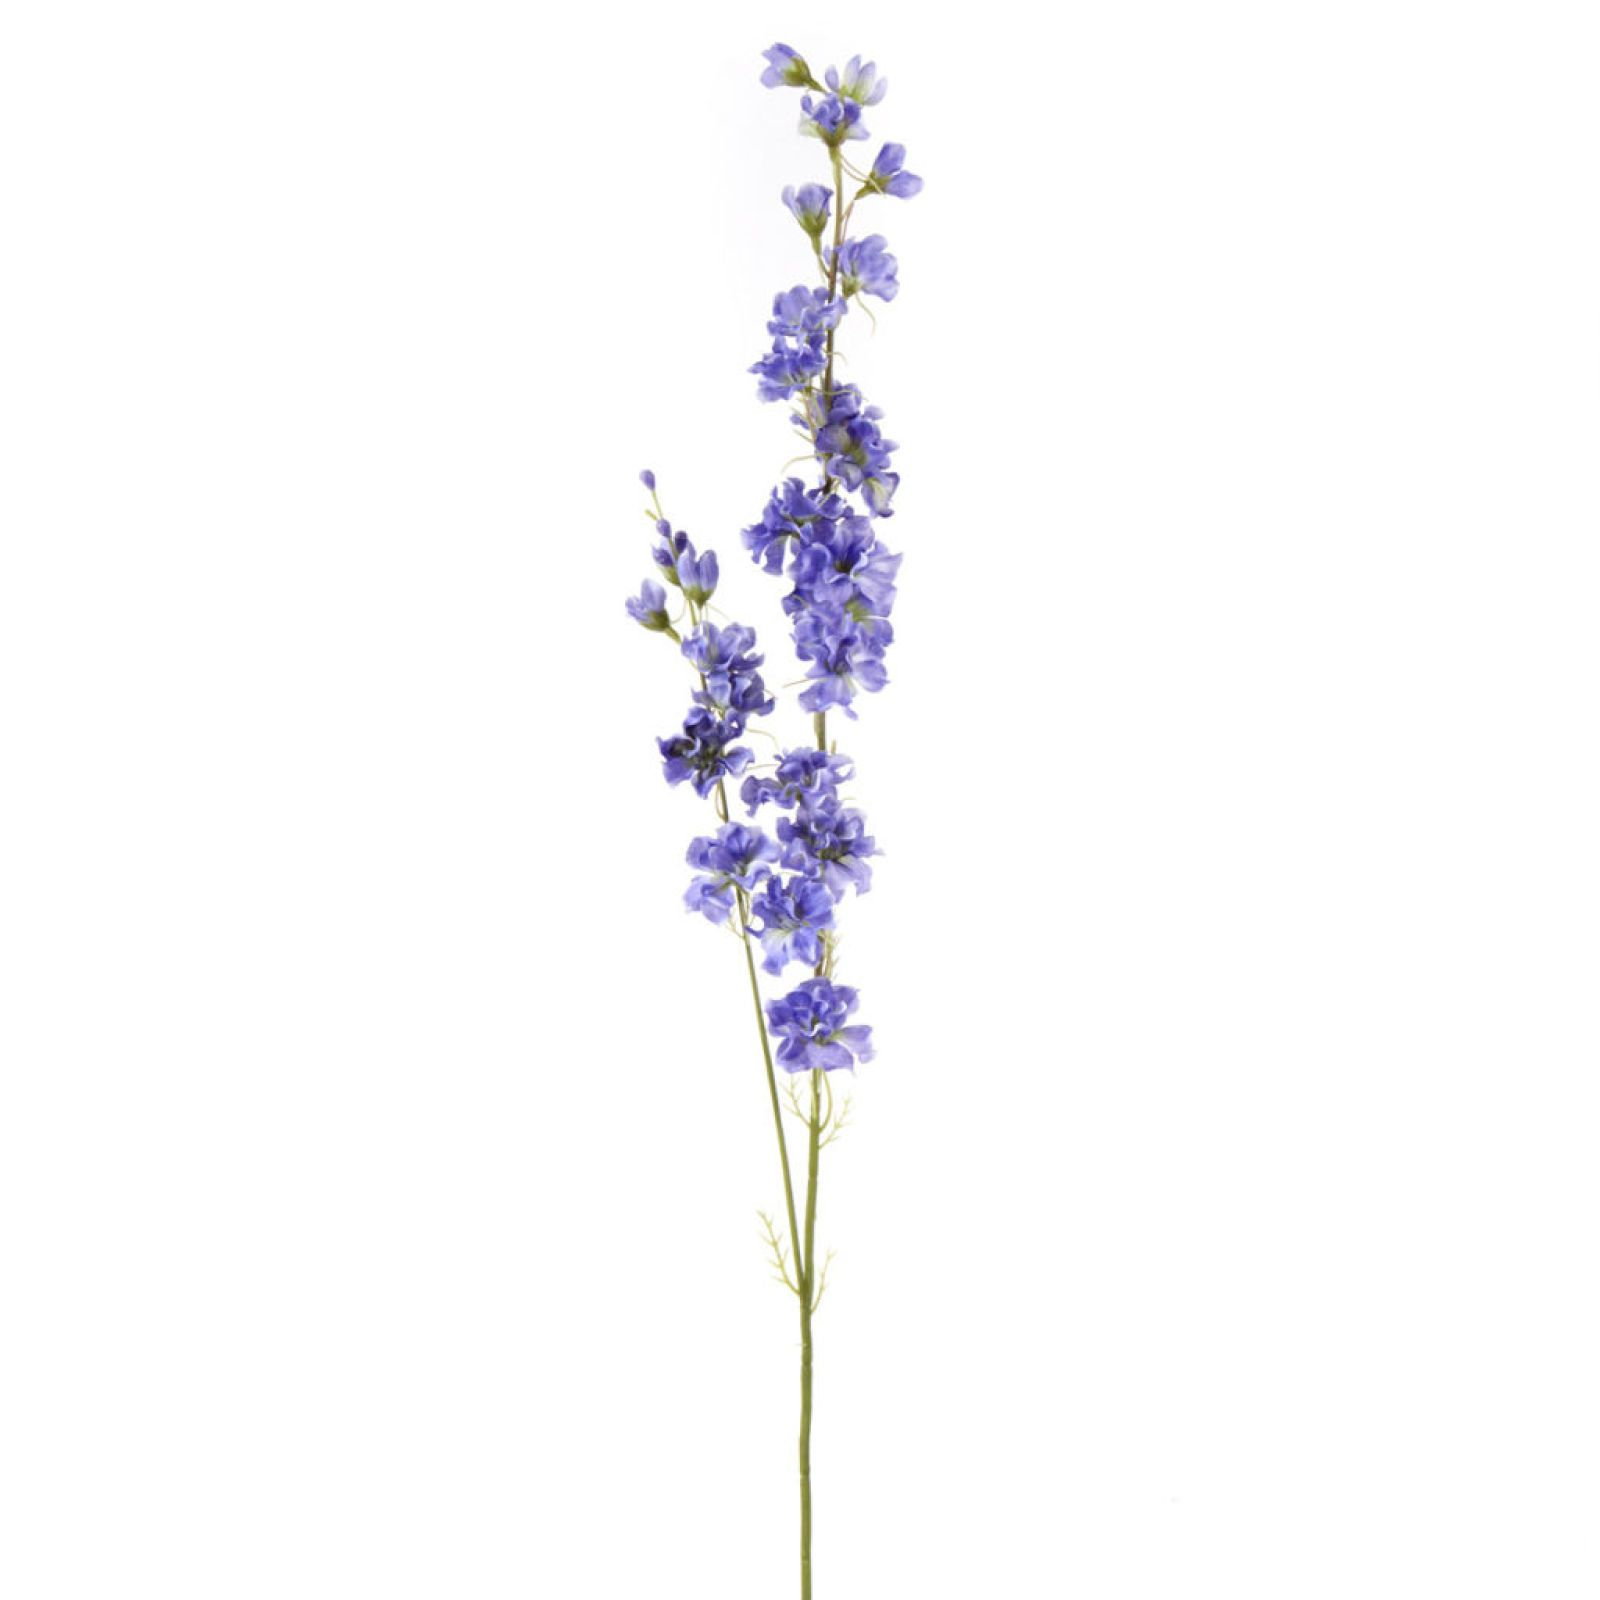 The July birth flower, these lush flowers symbolize an open heart and ardent attachment and convey a feeling of lightness and levity. Create a wonderful floral arrangement with this lavender delphiniu